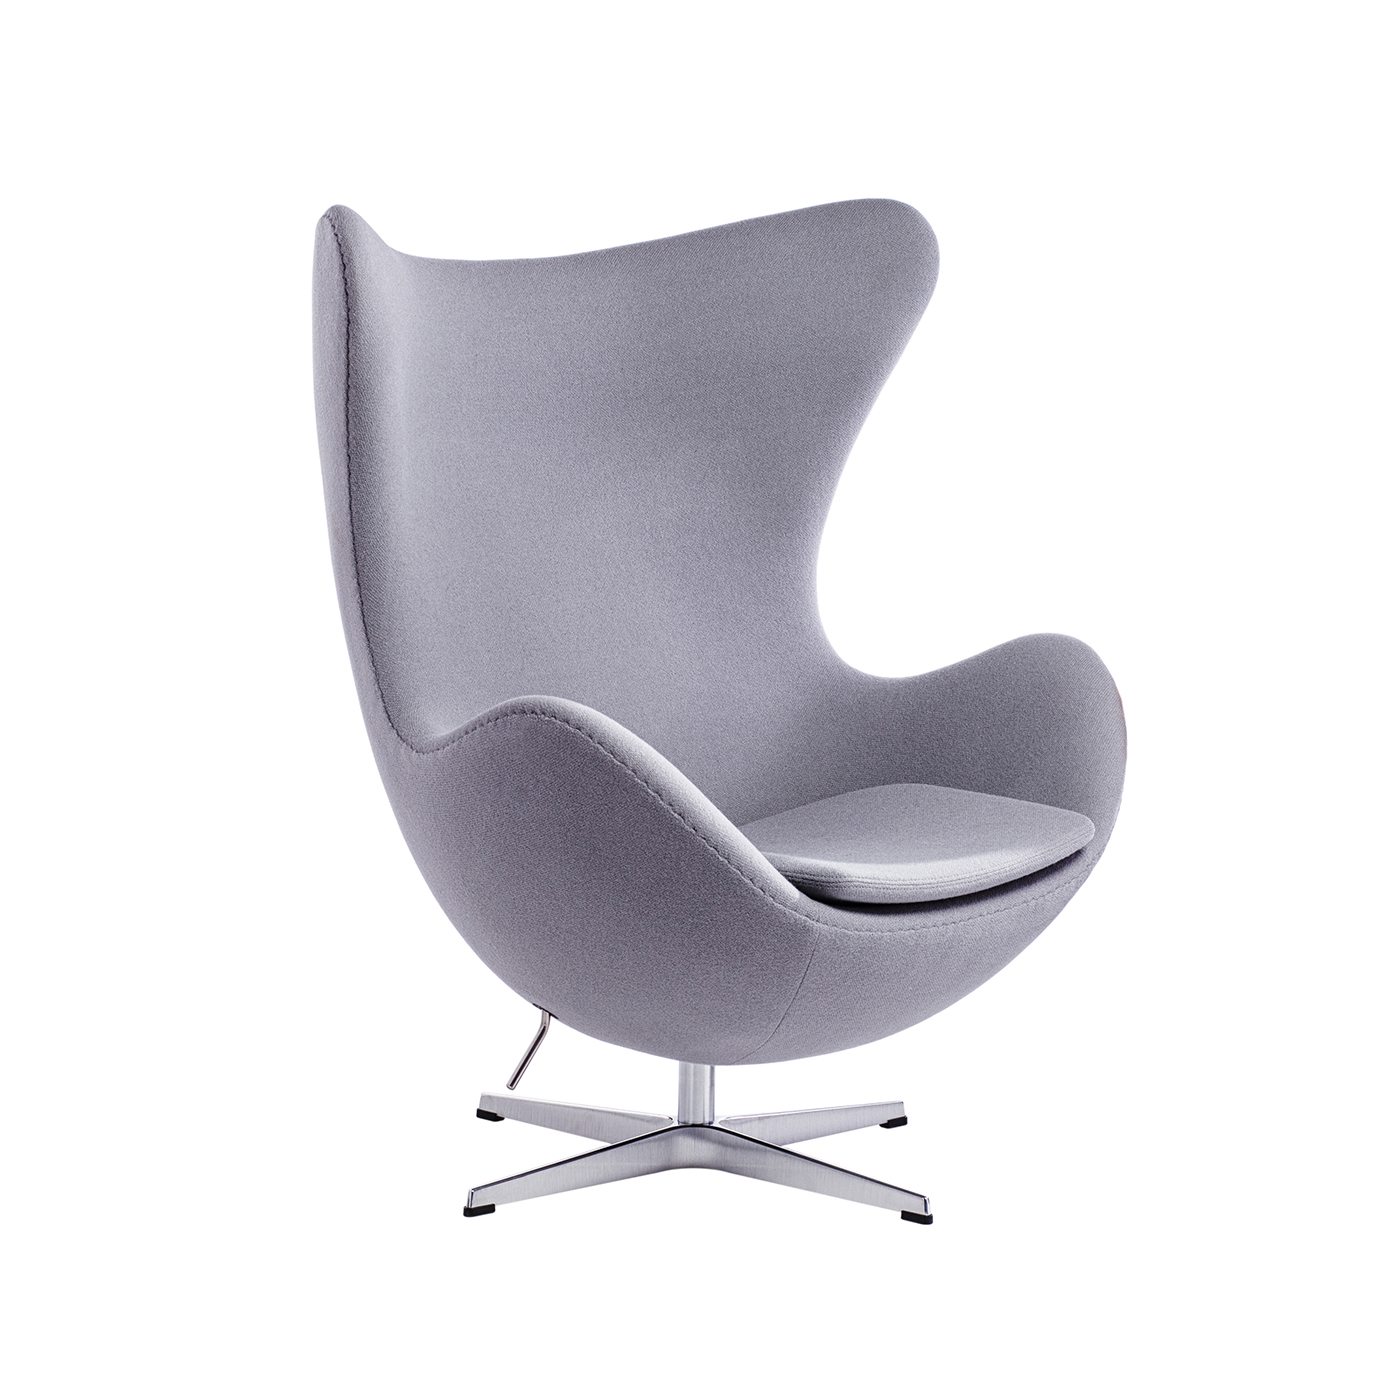 Ei Stuhl Arne Jacobsen Ei Cheap Full Size Of Stuhl Youtube Arne